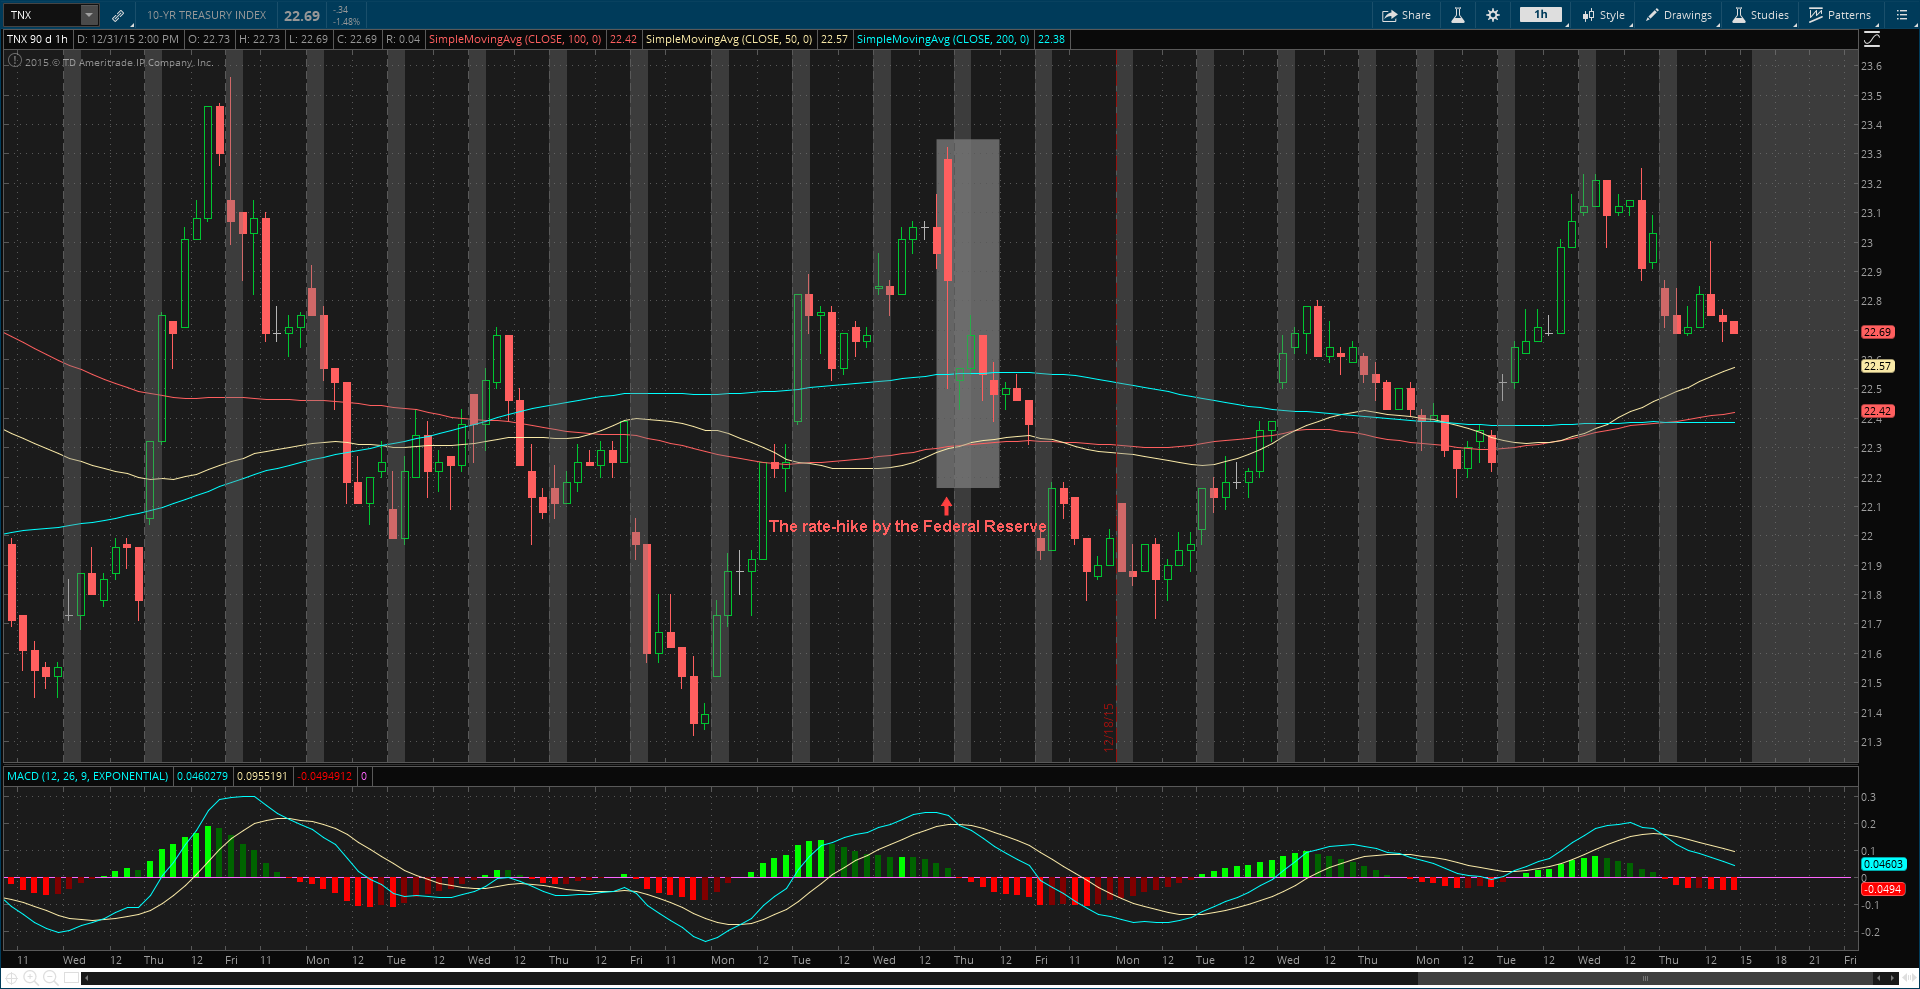 10-Year Treasury Index (TNX on thinkorswim platform) - Hourly